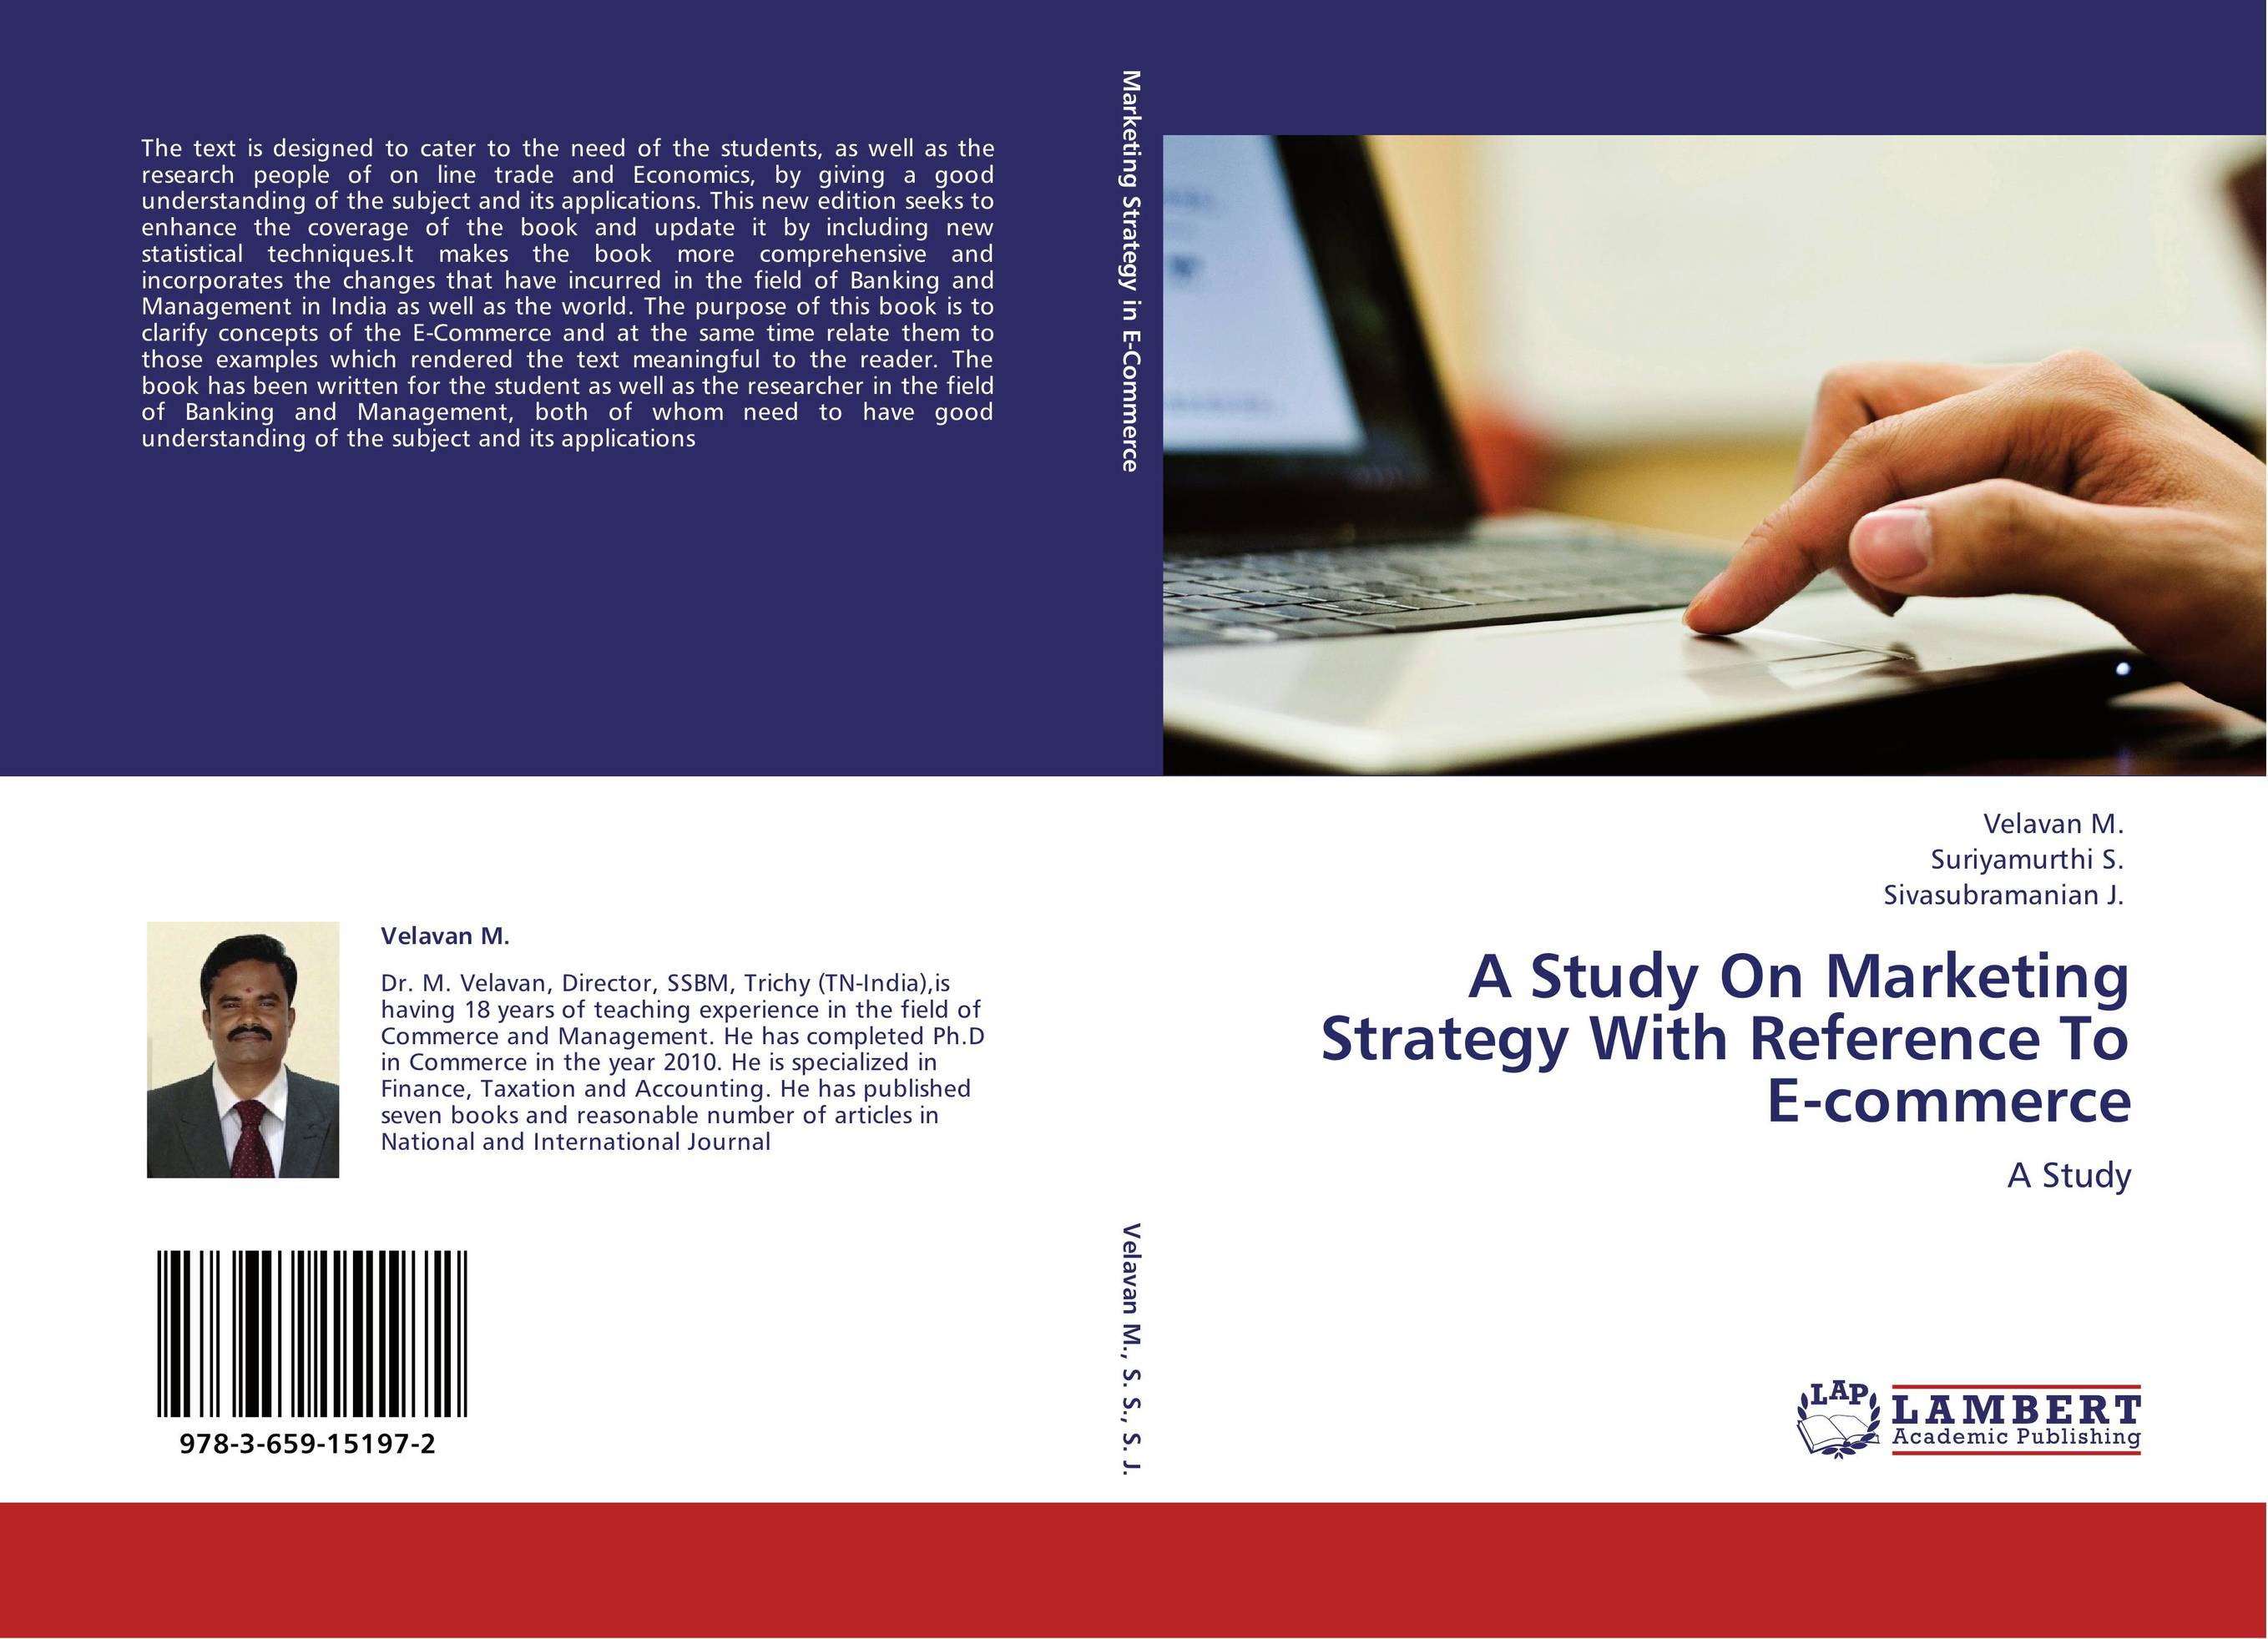 a study on change management commerce essay Change management -- a case study of british telecom today, when one thinks of british telecom, the leading telecommunications firm in the united kingdom, the words that come to mind are likely to be: successful company, preferred service provider, good service, market leader, reliable, financially solvent, satisfied employees.